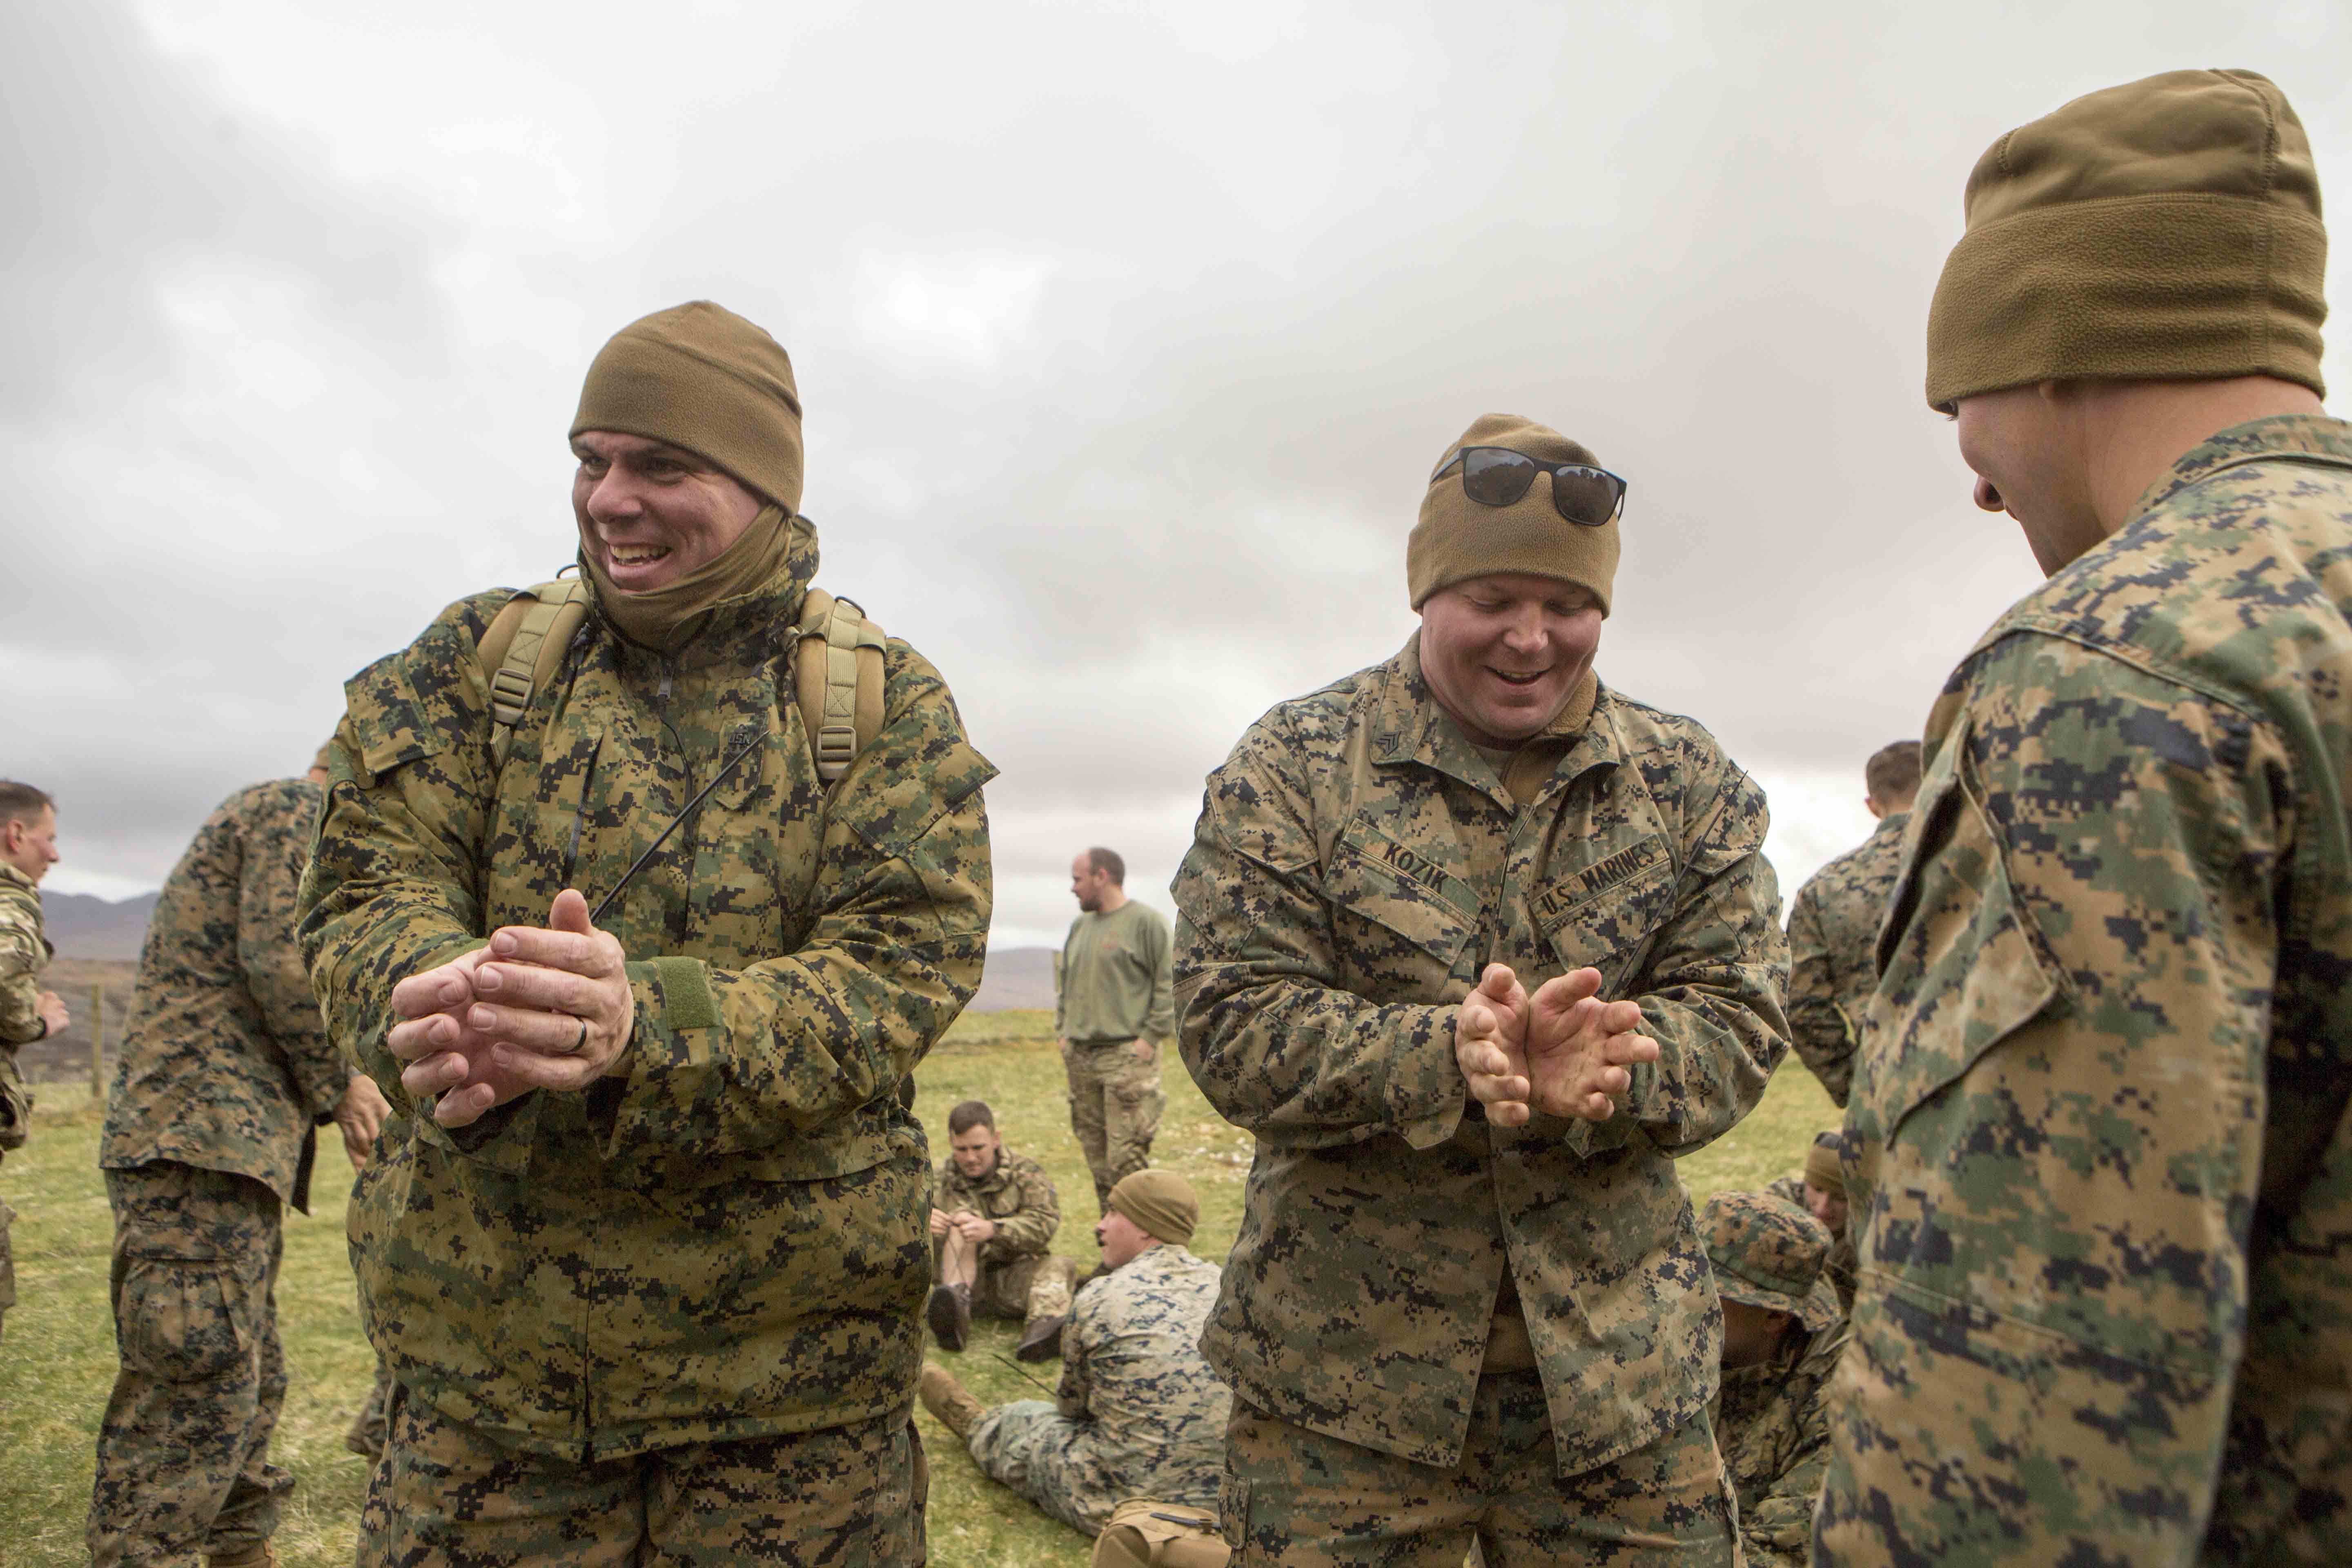 U.S. Navy Chief Petty Officer Rafael Corrada (left), corpsman with 4th Air Naval Gunfire Liaison Company, Force Headquarters Group, and U.S. Marine Corps Sgt. Michael Kozik, joint fires observer with 4th ANGLICO, FHG, attempt to escape from zip-tie handcuffs during survival training, in Durness, Scotland, April 26, 2018. 4th ANGLICO is in Scotland to take part in Joint Warrior 18-1, an exercise that furthers their readiness and effectiveness in combined arms integration, small unit tactics and land navigation. This training aims at improving their capabilities and combat effectiveness and ensures they're ready to fight tonight.